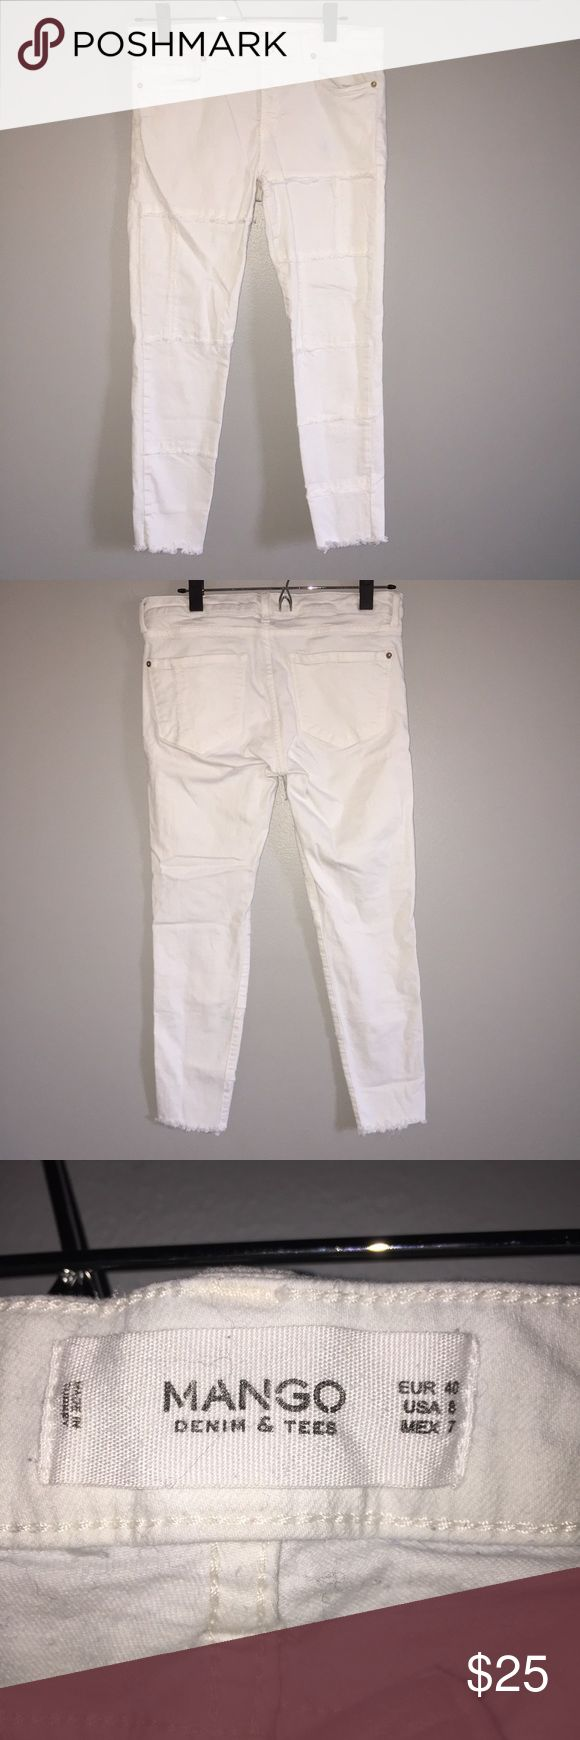 Mango jeans White jeans with detailing (shown in fourth picture). Brand new quality, worn once. Super unique and cute! Mango Jeans Skinny